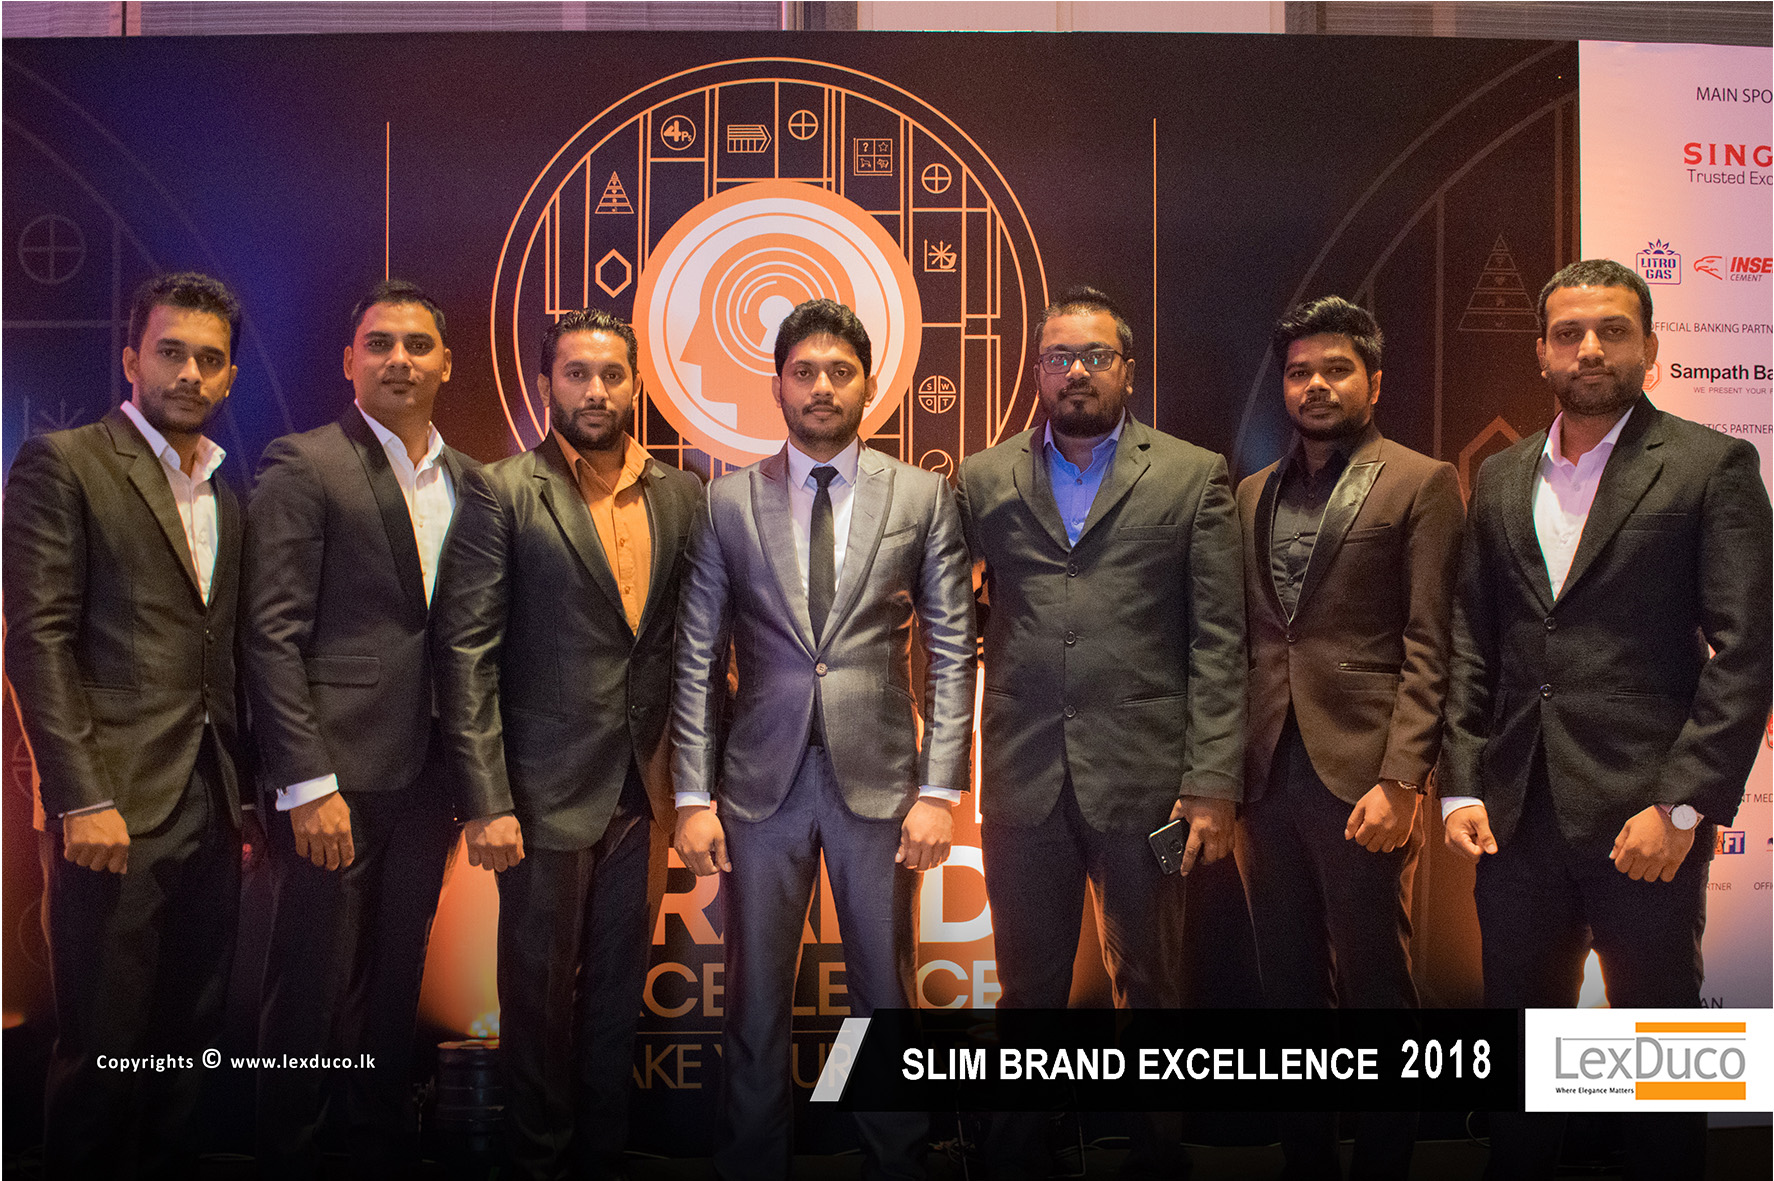 SLIM BRAND EXCELLENCE 2018   | Lex Duco